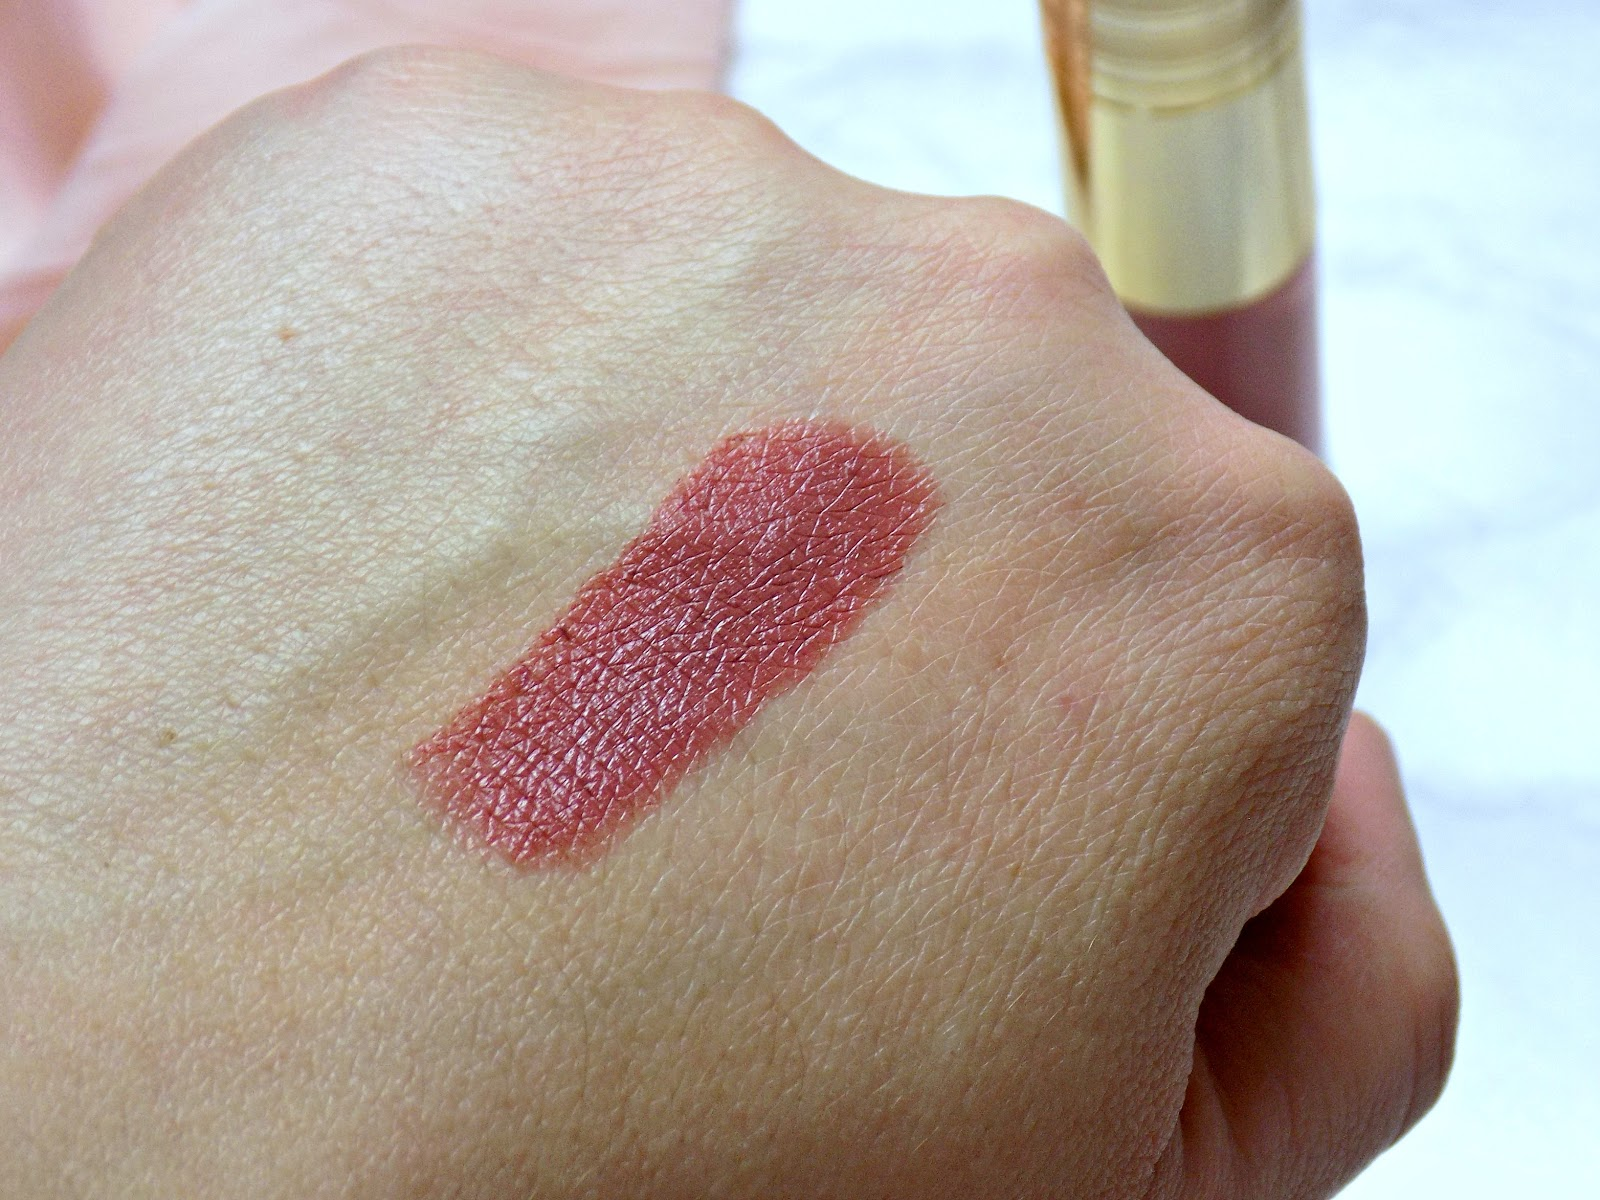 Tarte the lip sculptor lipstick & lipgloss in shade Kind